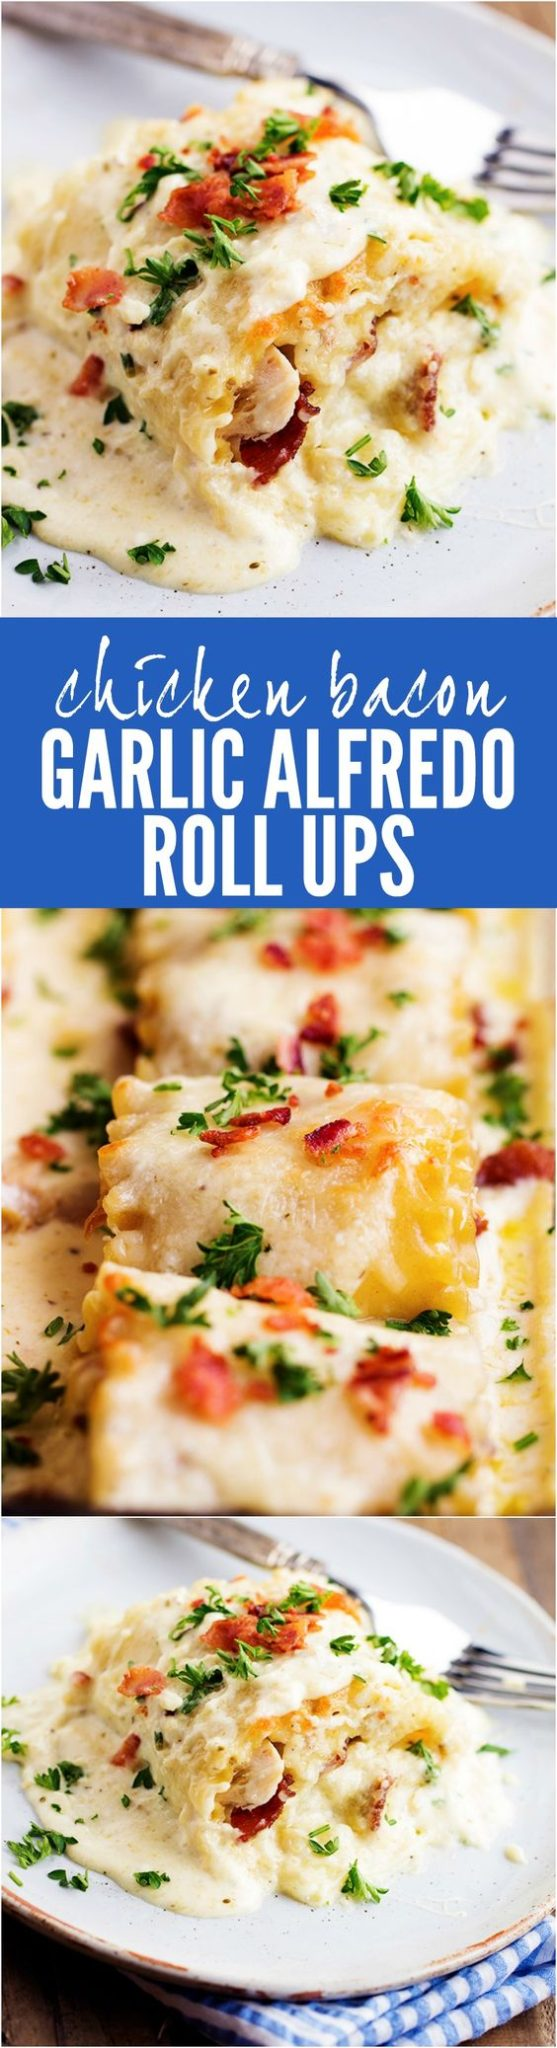 Chicken Recipes - Perfect Portion Chicken Bacon Garlic Alfredo Pasta Roll-Ups Recipe via The Recipe Critic #perfectportion #chickenrecipes #popularchickenrecipes #chicken #easychickenrecipes #chickenbreastrecipes #easylunches #easydinners #simplefamilymeals #simplefamilyrecipes #simplerecipes